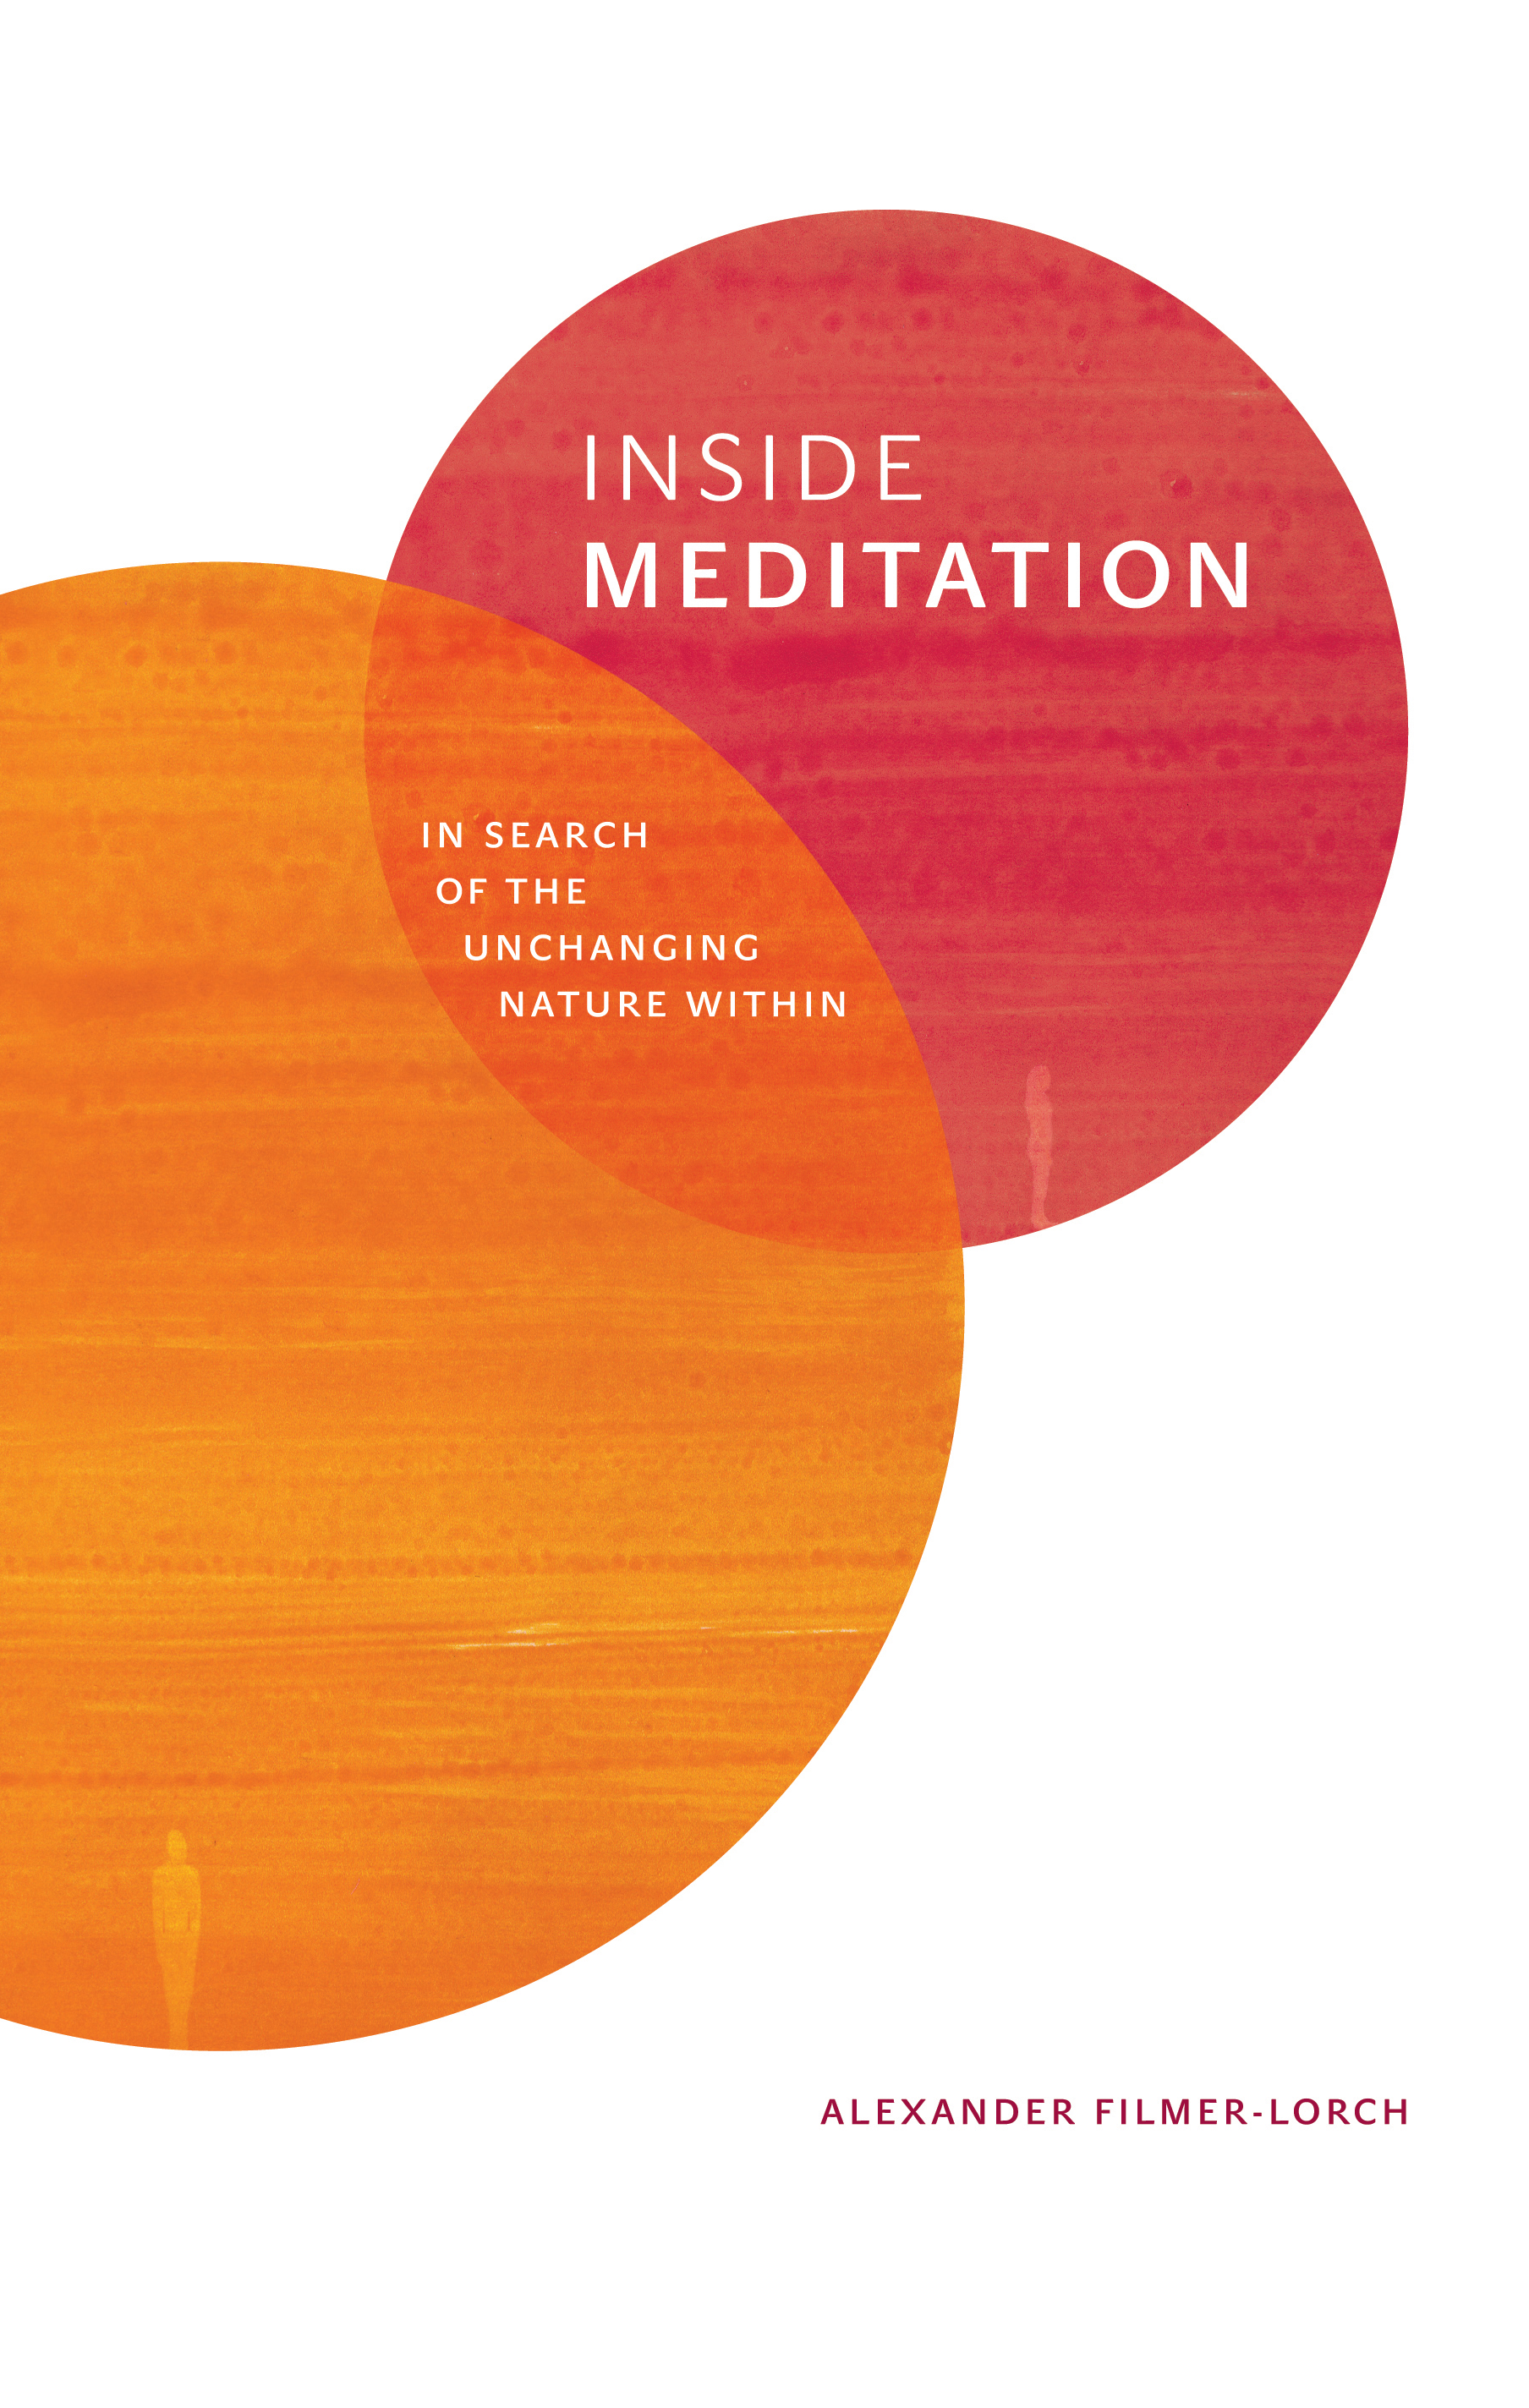 Inside Meditation In search of the unchanging nature within